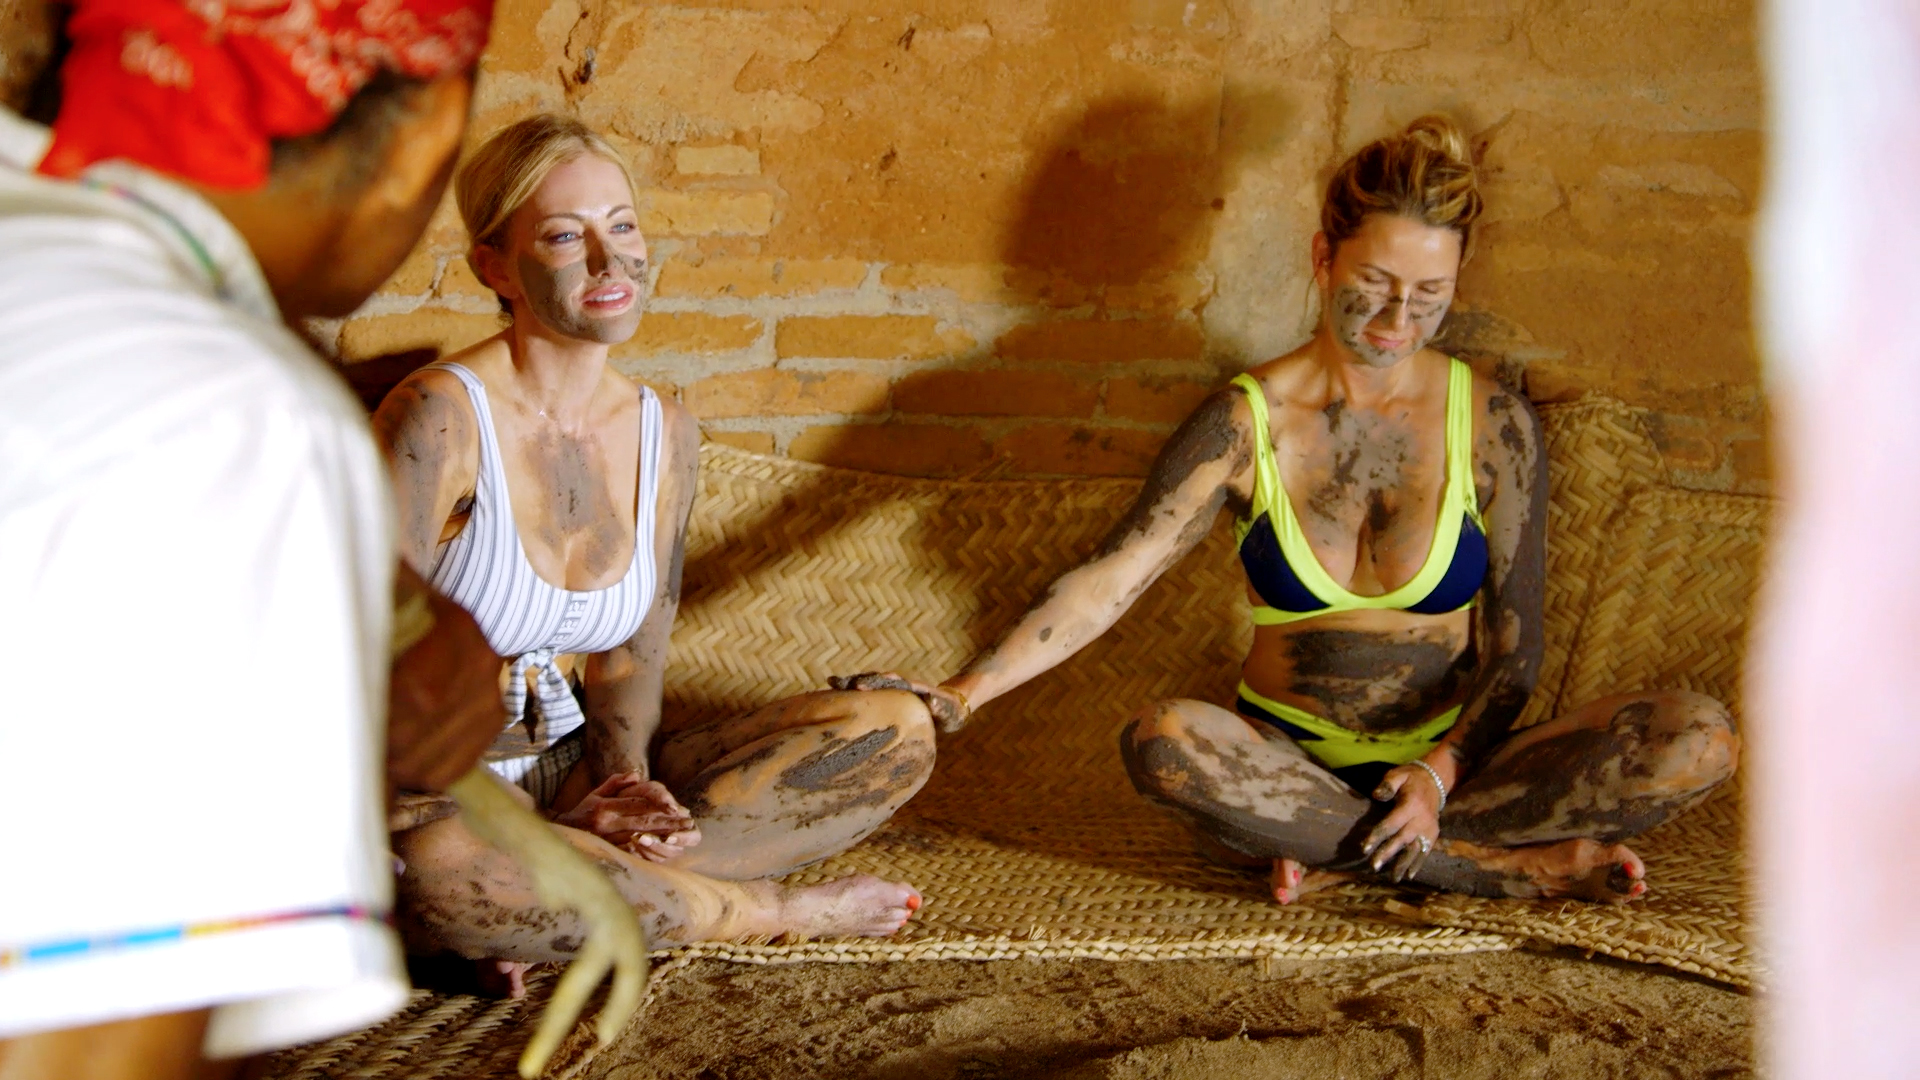 The Ladies Share an Emotional Experience in a Sweat Lodge